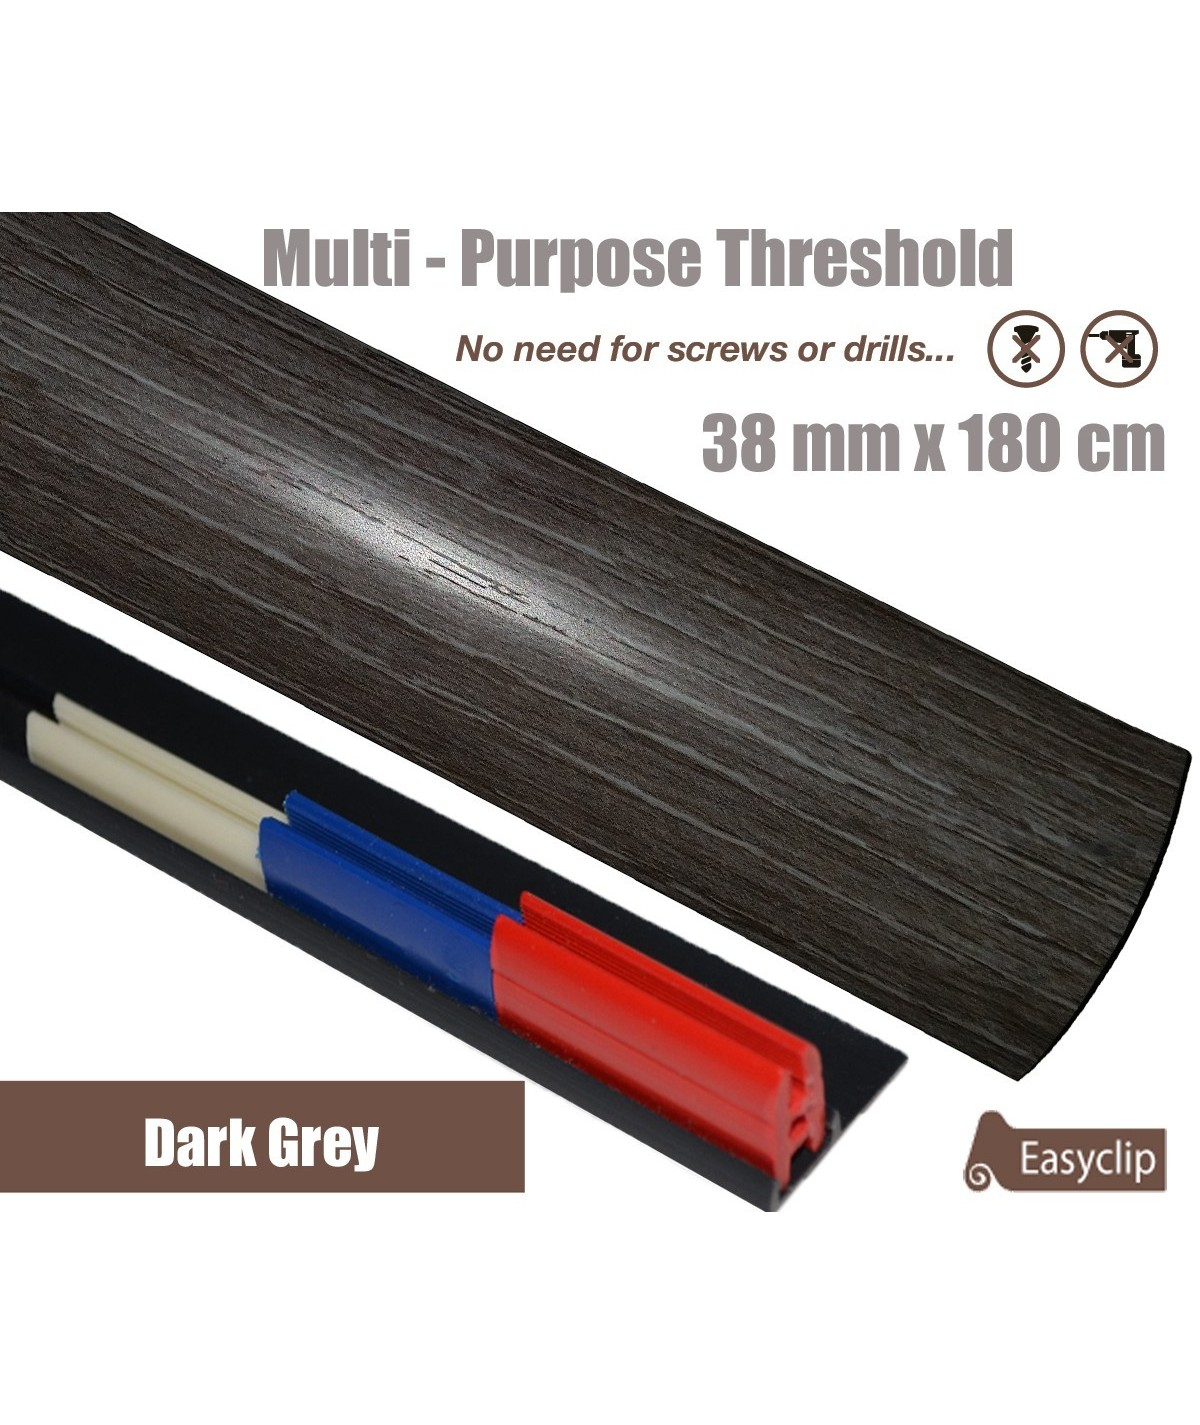 Dark Grey Threshold Strip 38mm x 180cm laminate multi Purpose Adhesive Clip System